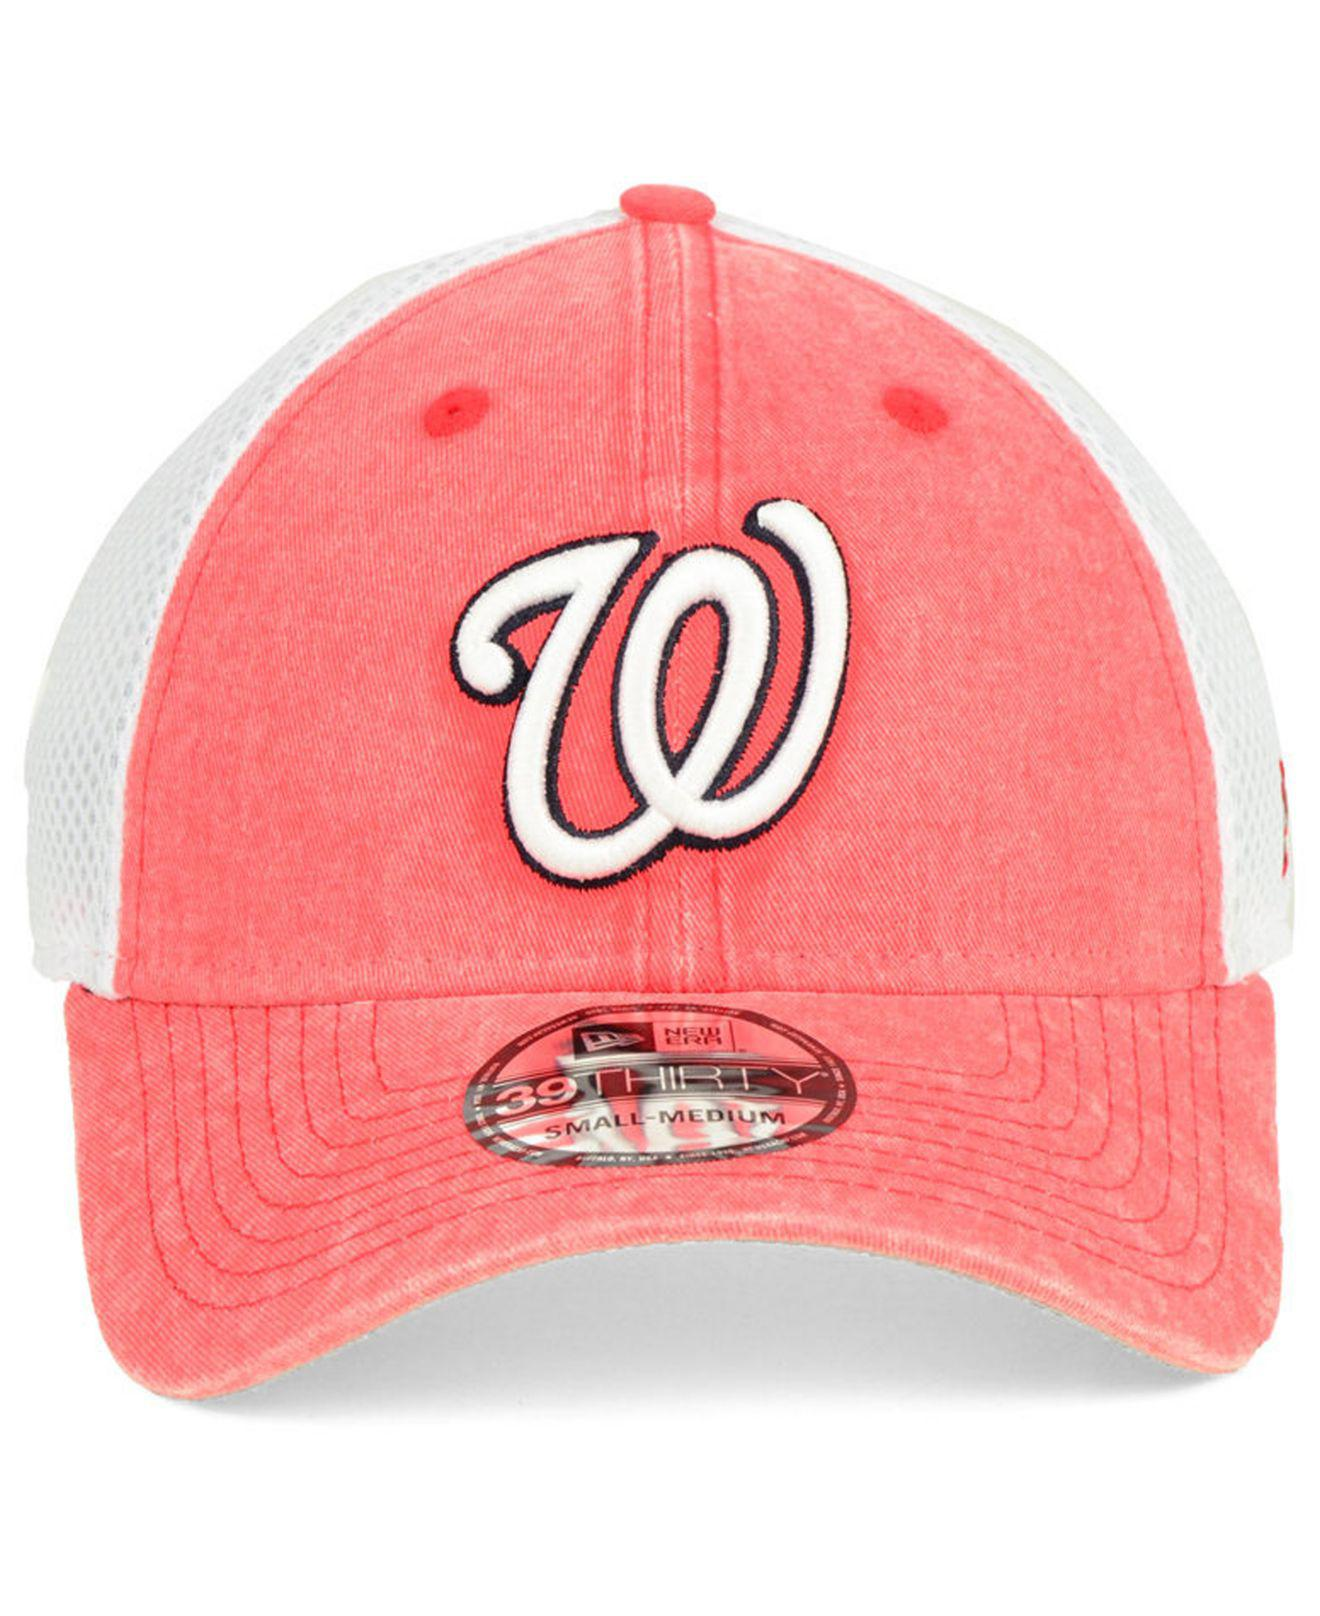 sale retailer 3c048 124d1 get los angeles angels new era mlb stache 59fifty cap e74ef 42ff5  get lyst  ktz washington nationals hooge neo 39thirty cap in red for men e6eab e4556